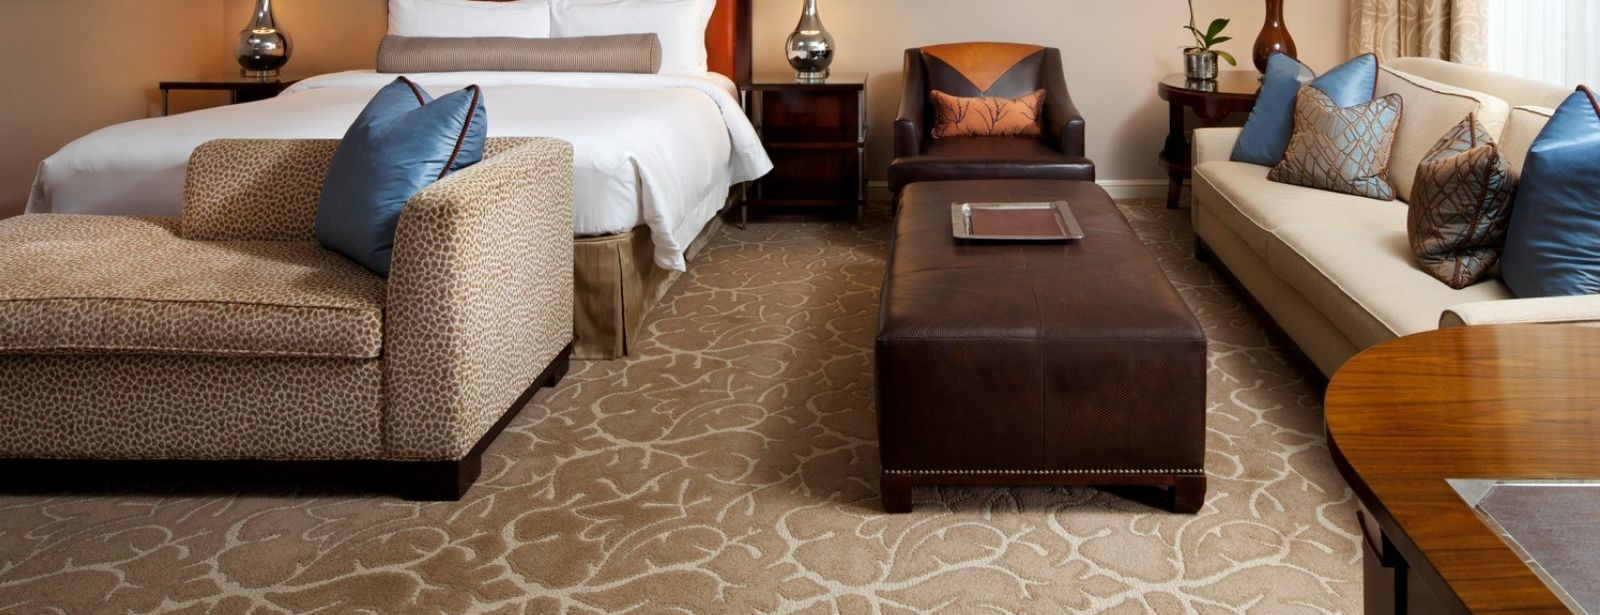 Grand Luxe Guest Room - Luxury Hotels in Houston - The St. Regis Houston Hotel